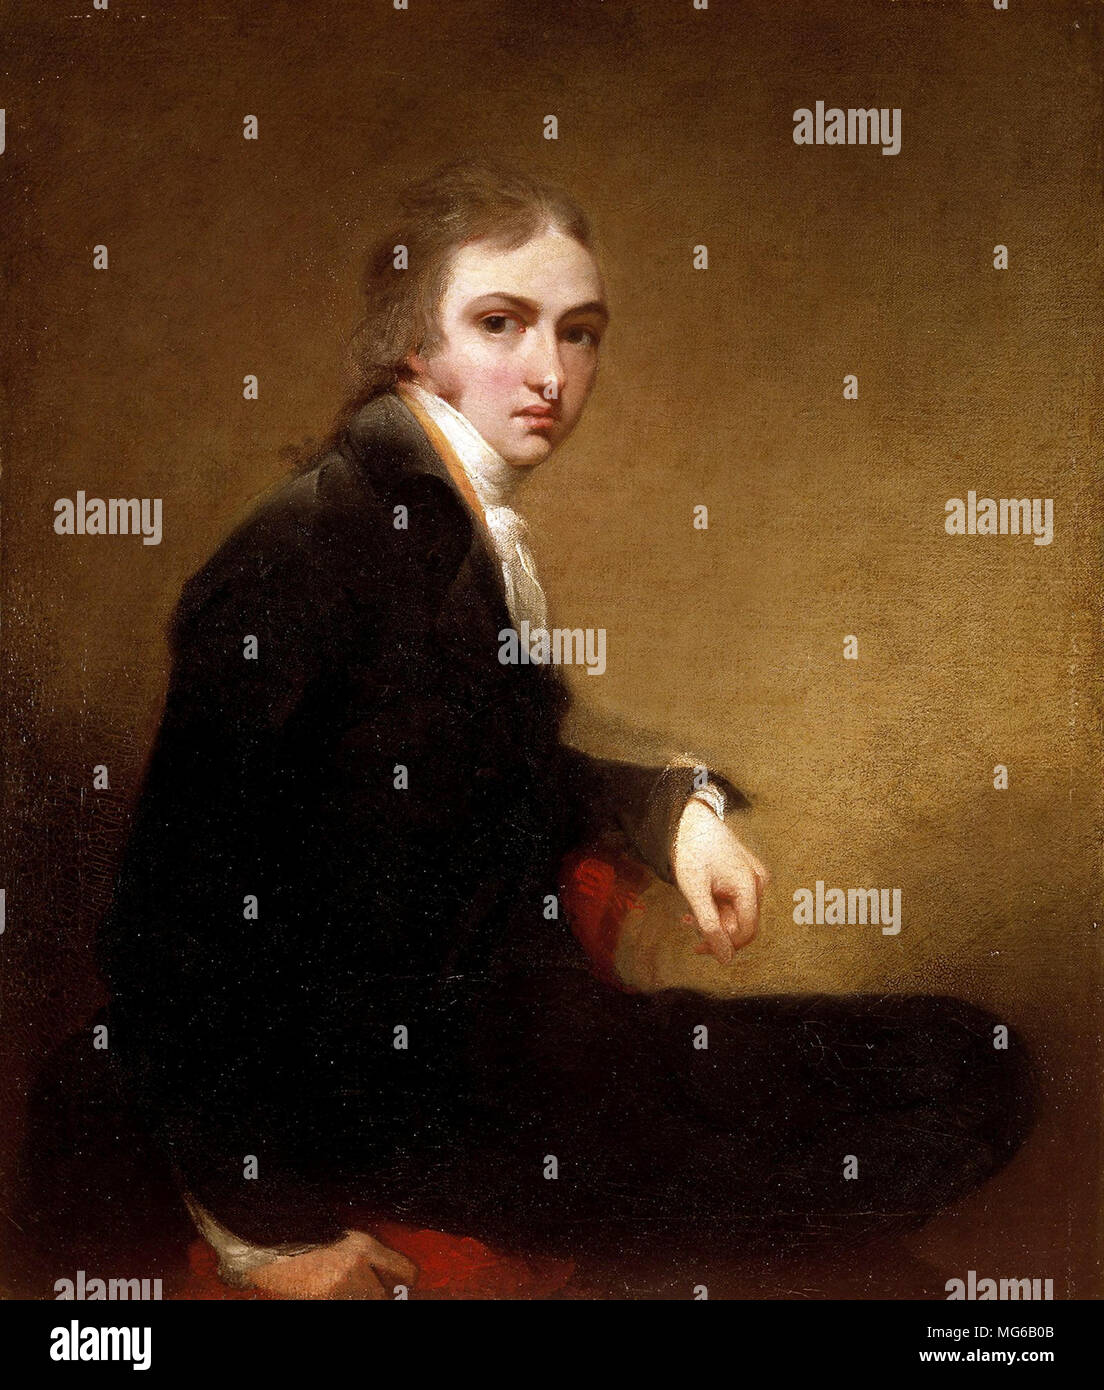 Sir Thomas Lawrence, self-portrait, 1788. Sir Thomas Lawrence (1769 – 1830) English portrait painter - Stock Image